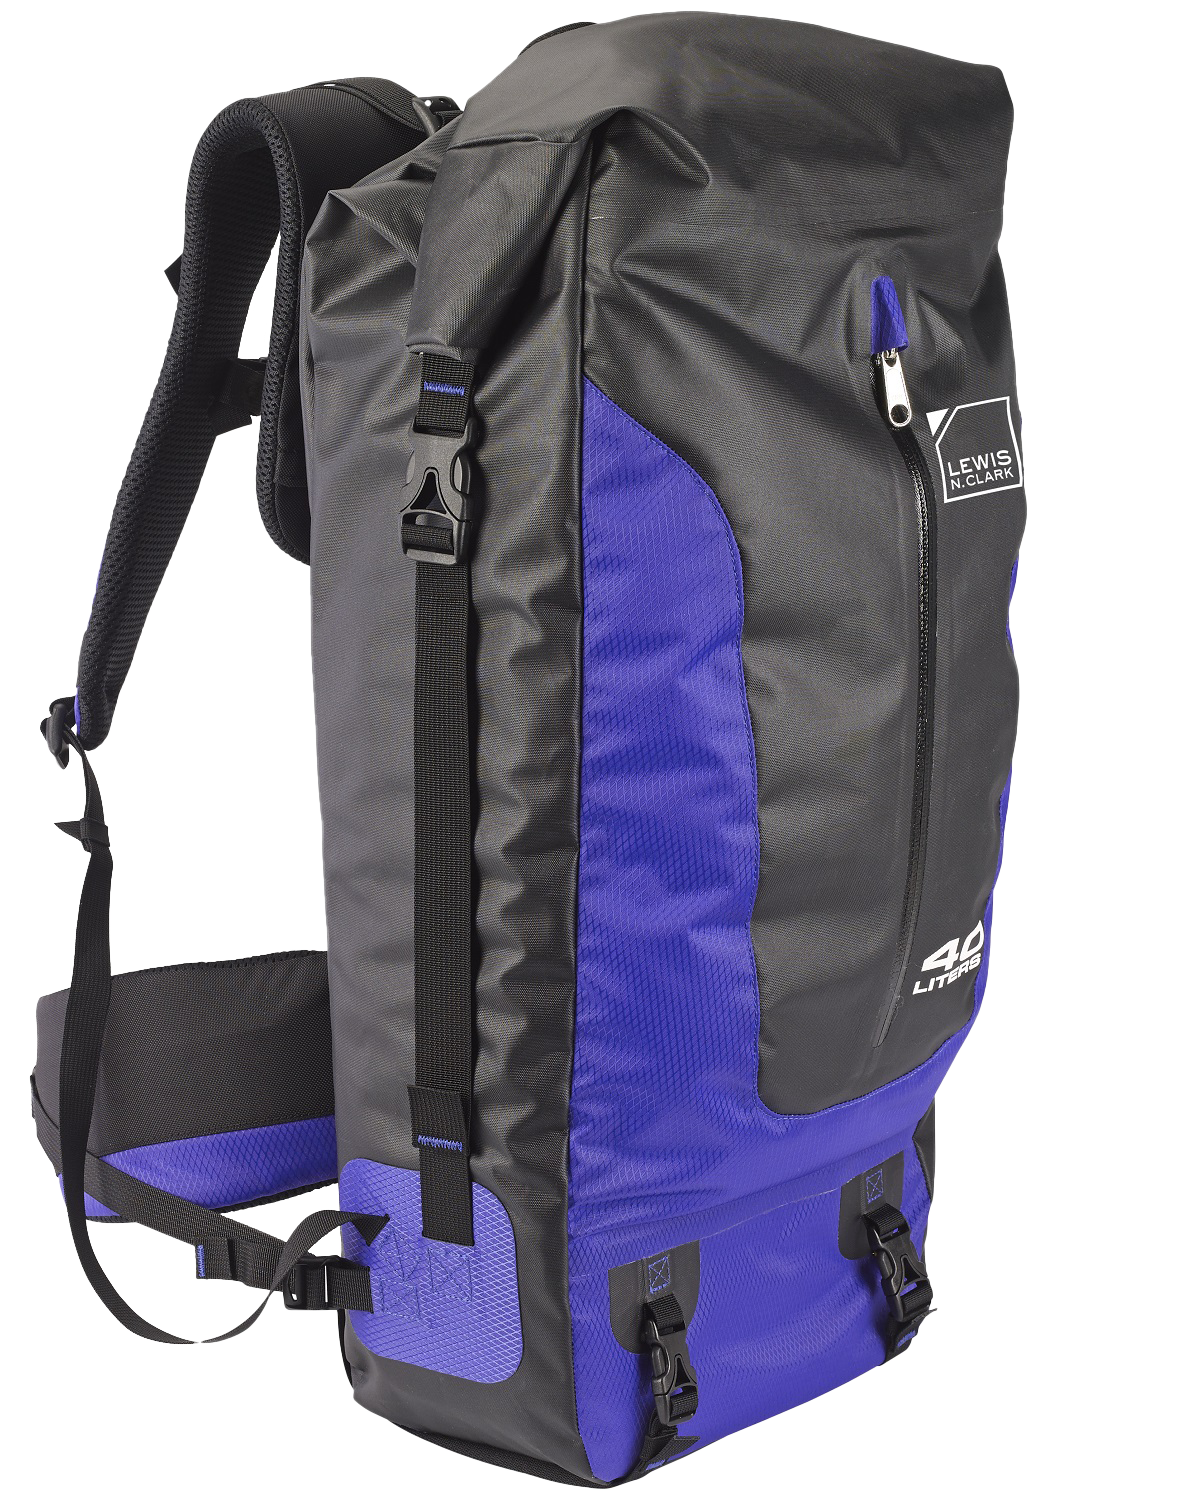 Daypack | Day Hiking Pack By Lewis N. Clark 40L